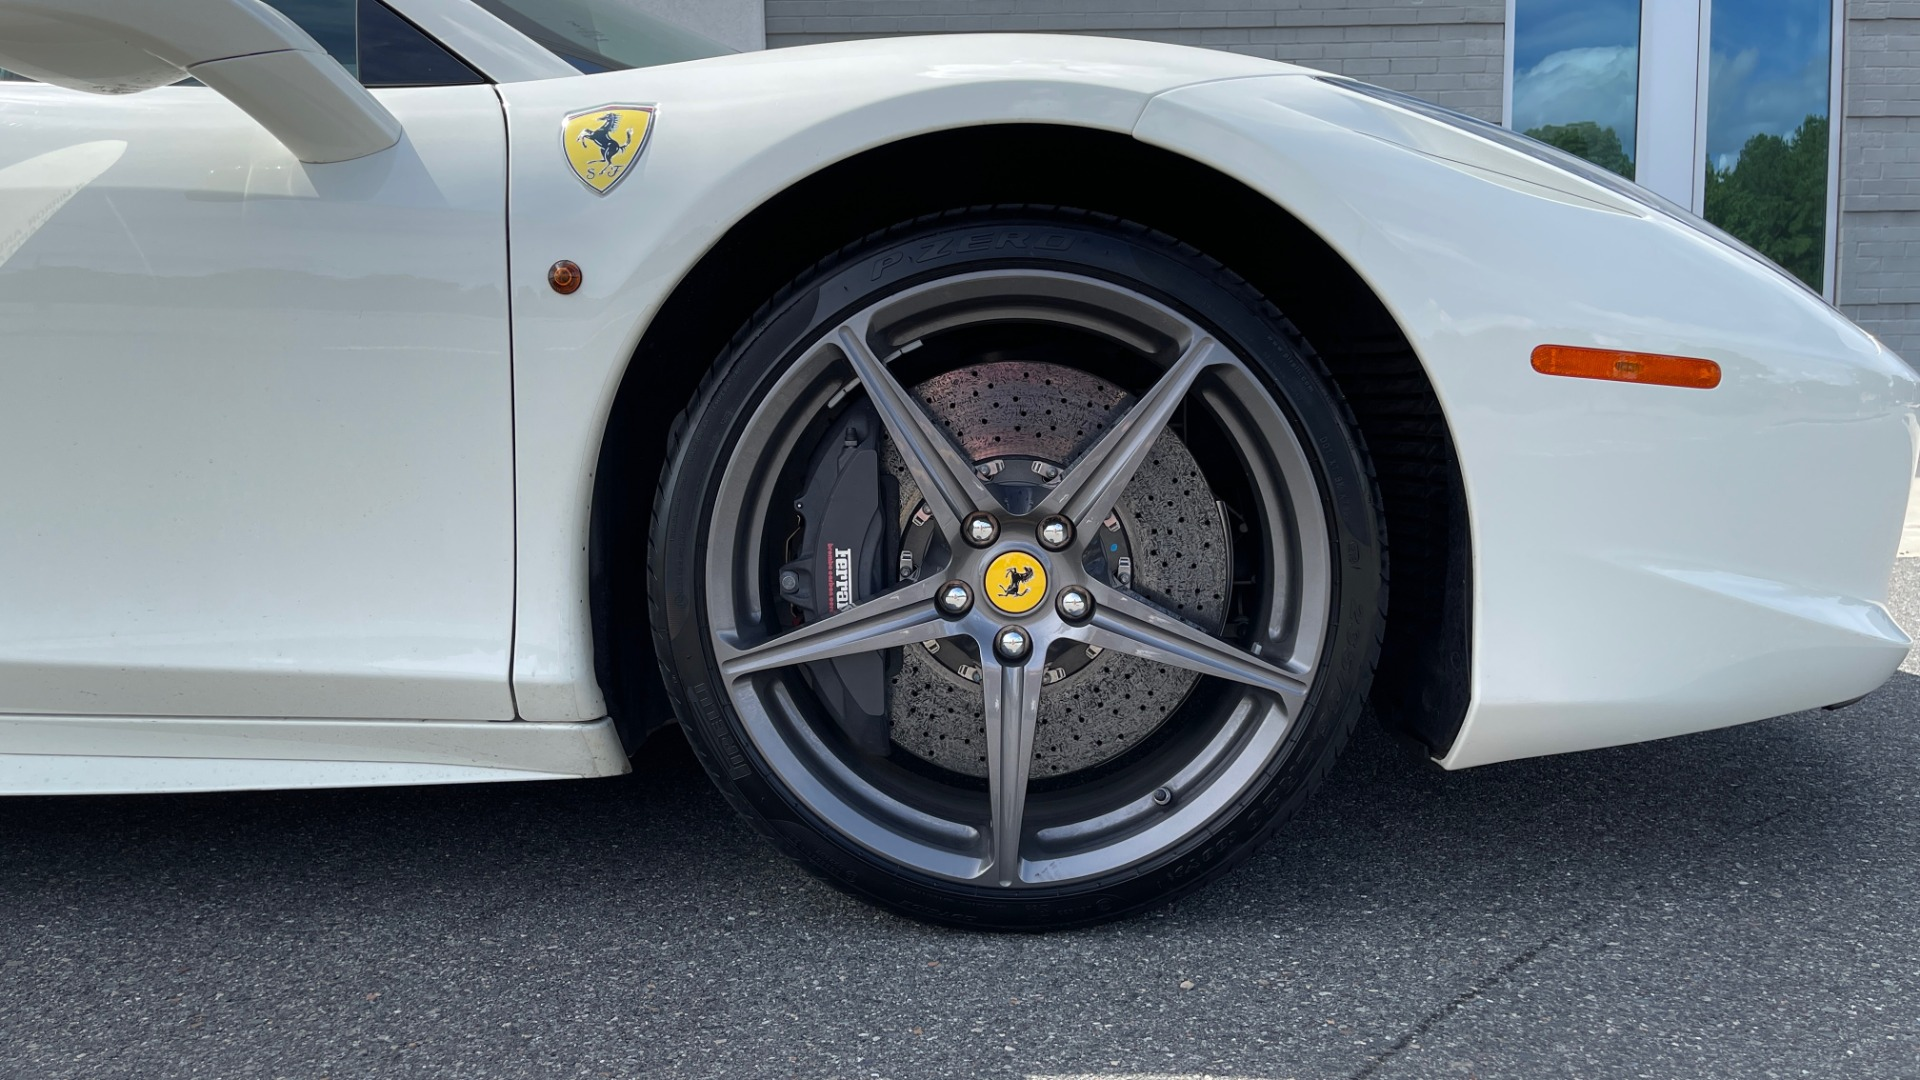 Used 2014 Ferrari 458 ITALIA SPIDER 570HP / F1 AUTO / CF SEATS / CARBON BRAKES / REARVIEW for sale $249,999 at Formula Imports in Charlotte NC 28227 77